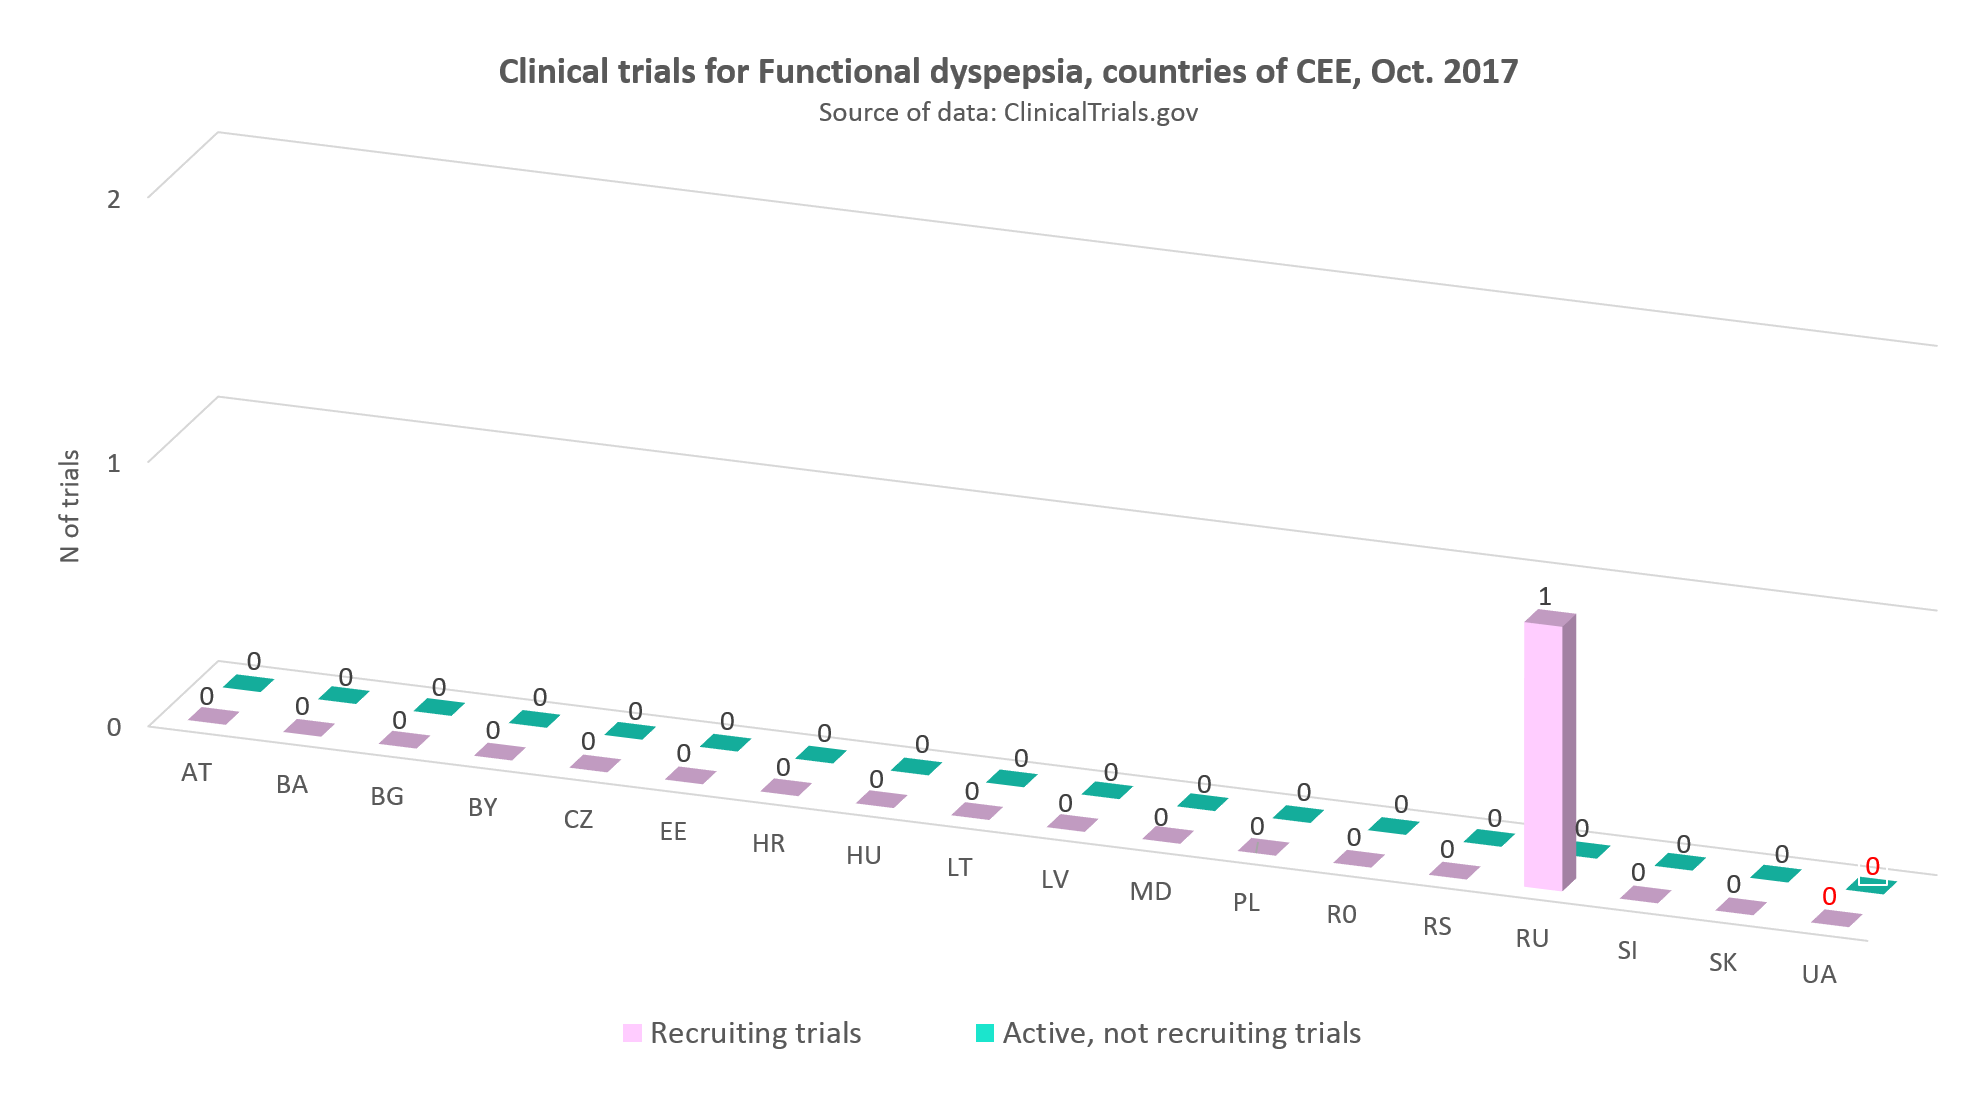 Clinical trials for functional dyspepsia in the countries of CEE, Оctober 2017